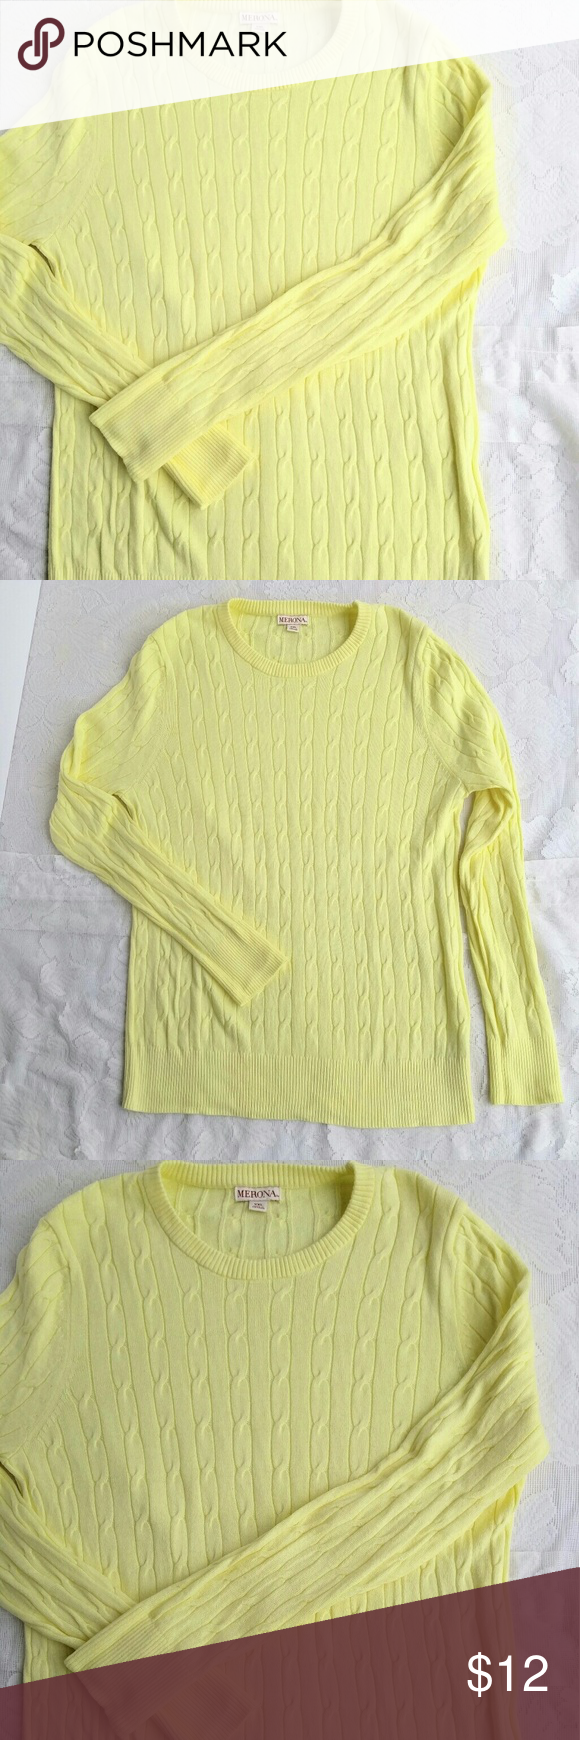 Merona Yellow Cable Knit Long Sleeve Sweater | Butter, Cable and ...